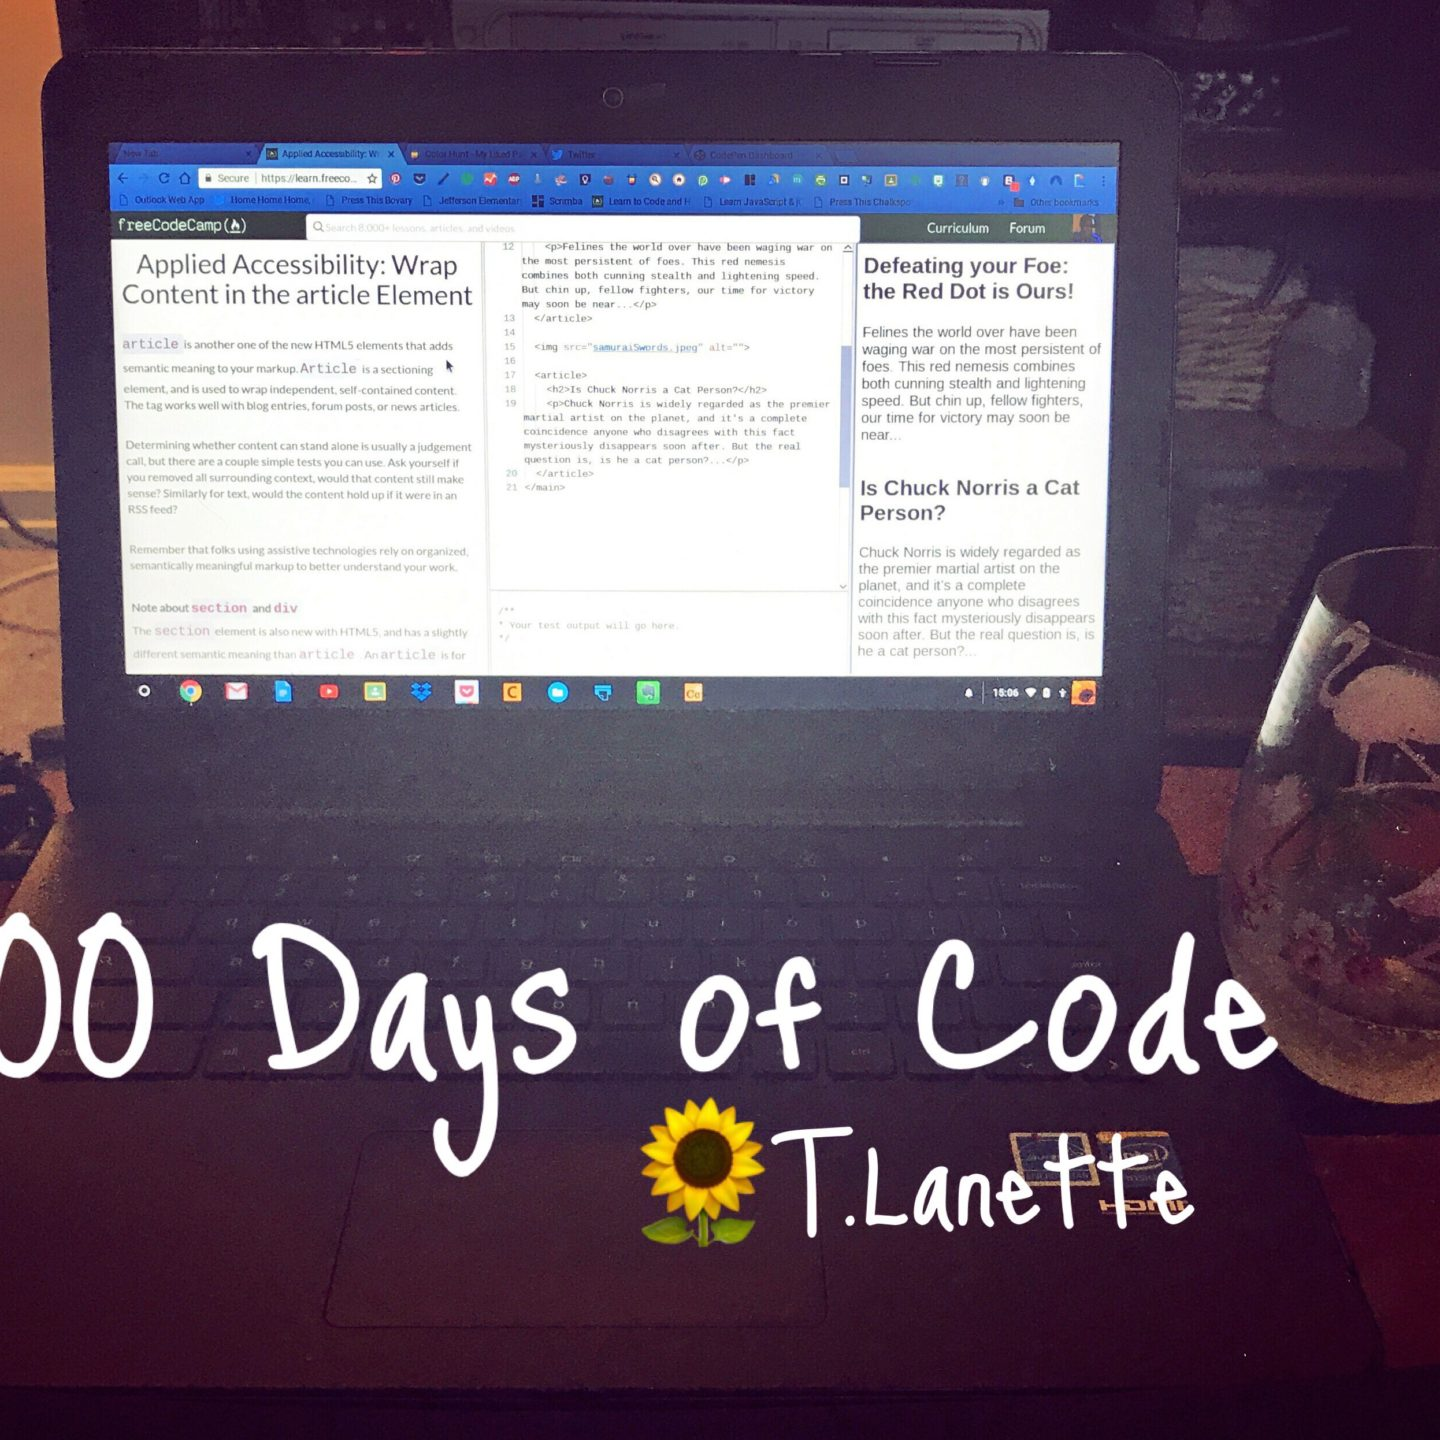 Finished My JavaScript Tutorial: #100DaysofCode